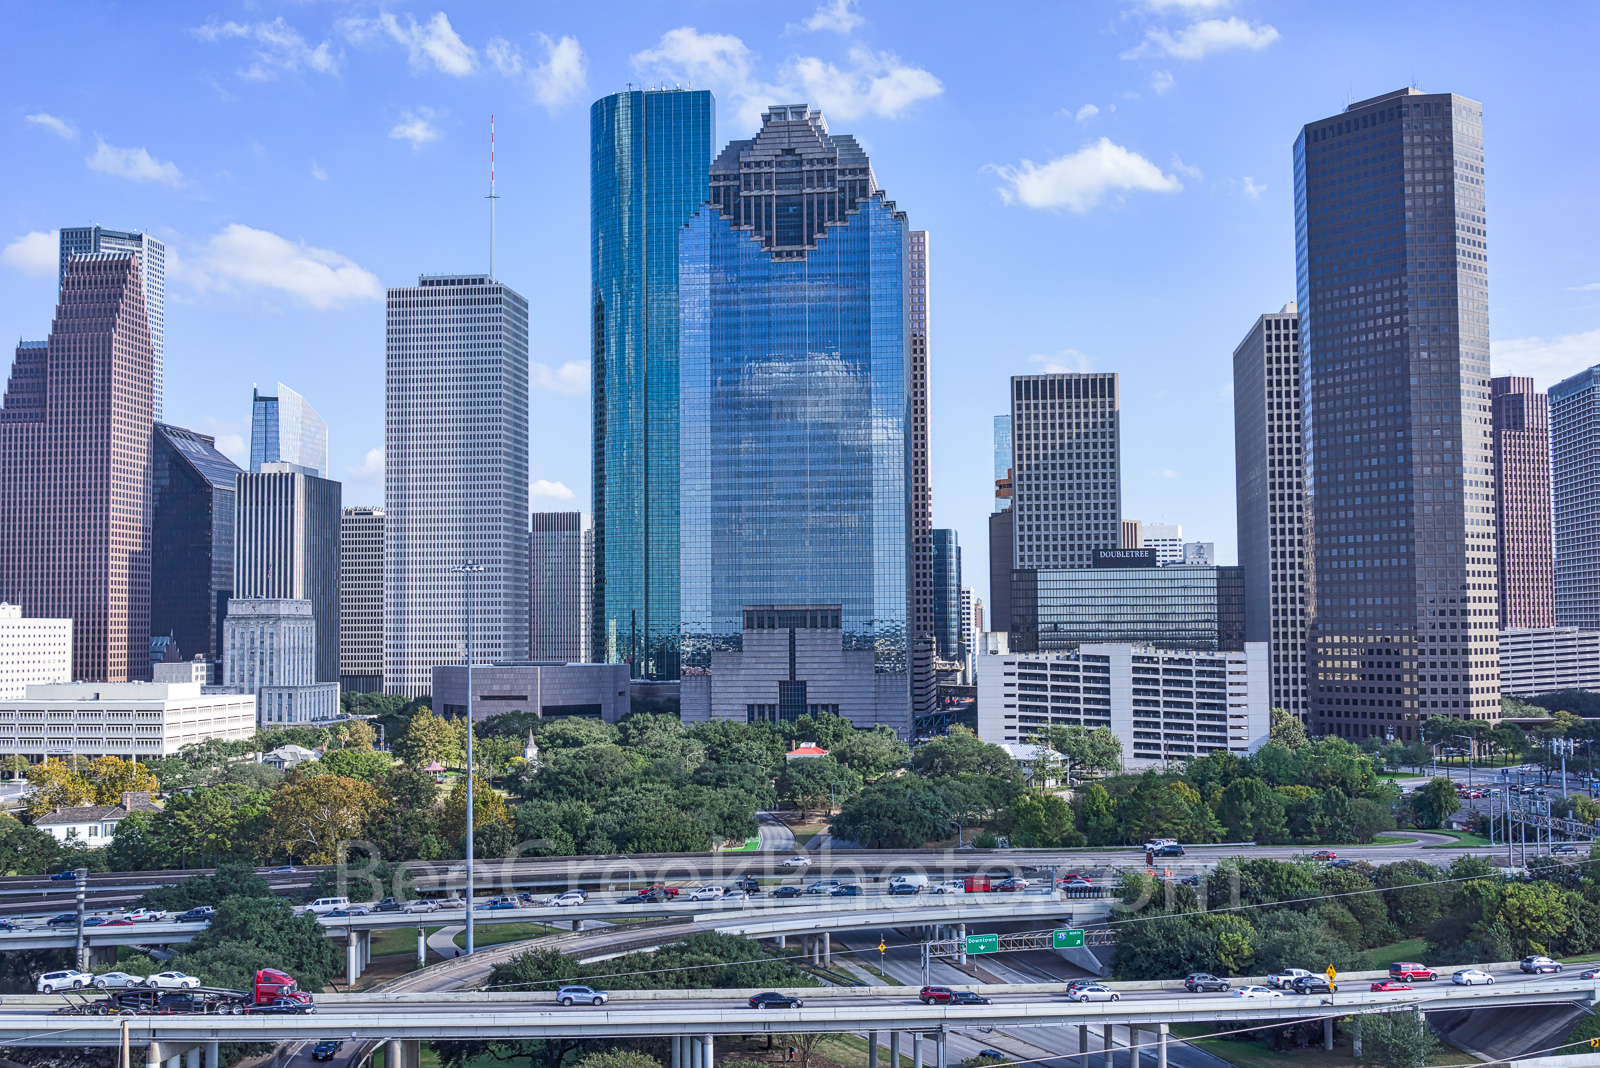 Houston, skyline, Houston cityscape, day, blue sky, daytime, aerial, cityscape, clouds, city, downtown, skyscrapers, buildings, high rise, IH45, museum district, art, culture, music, population, drone, photo